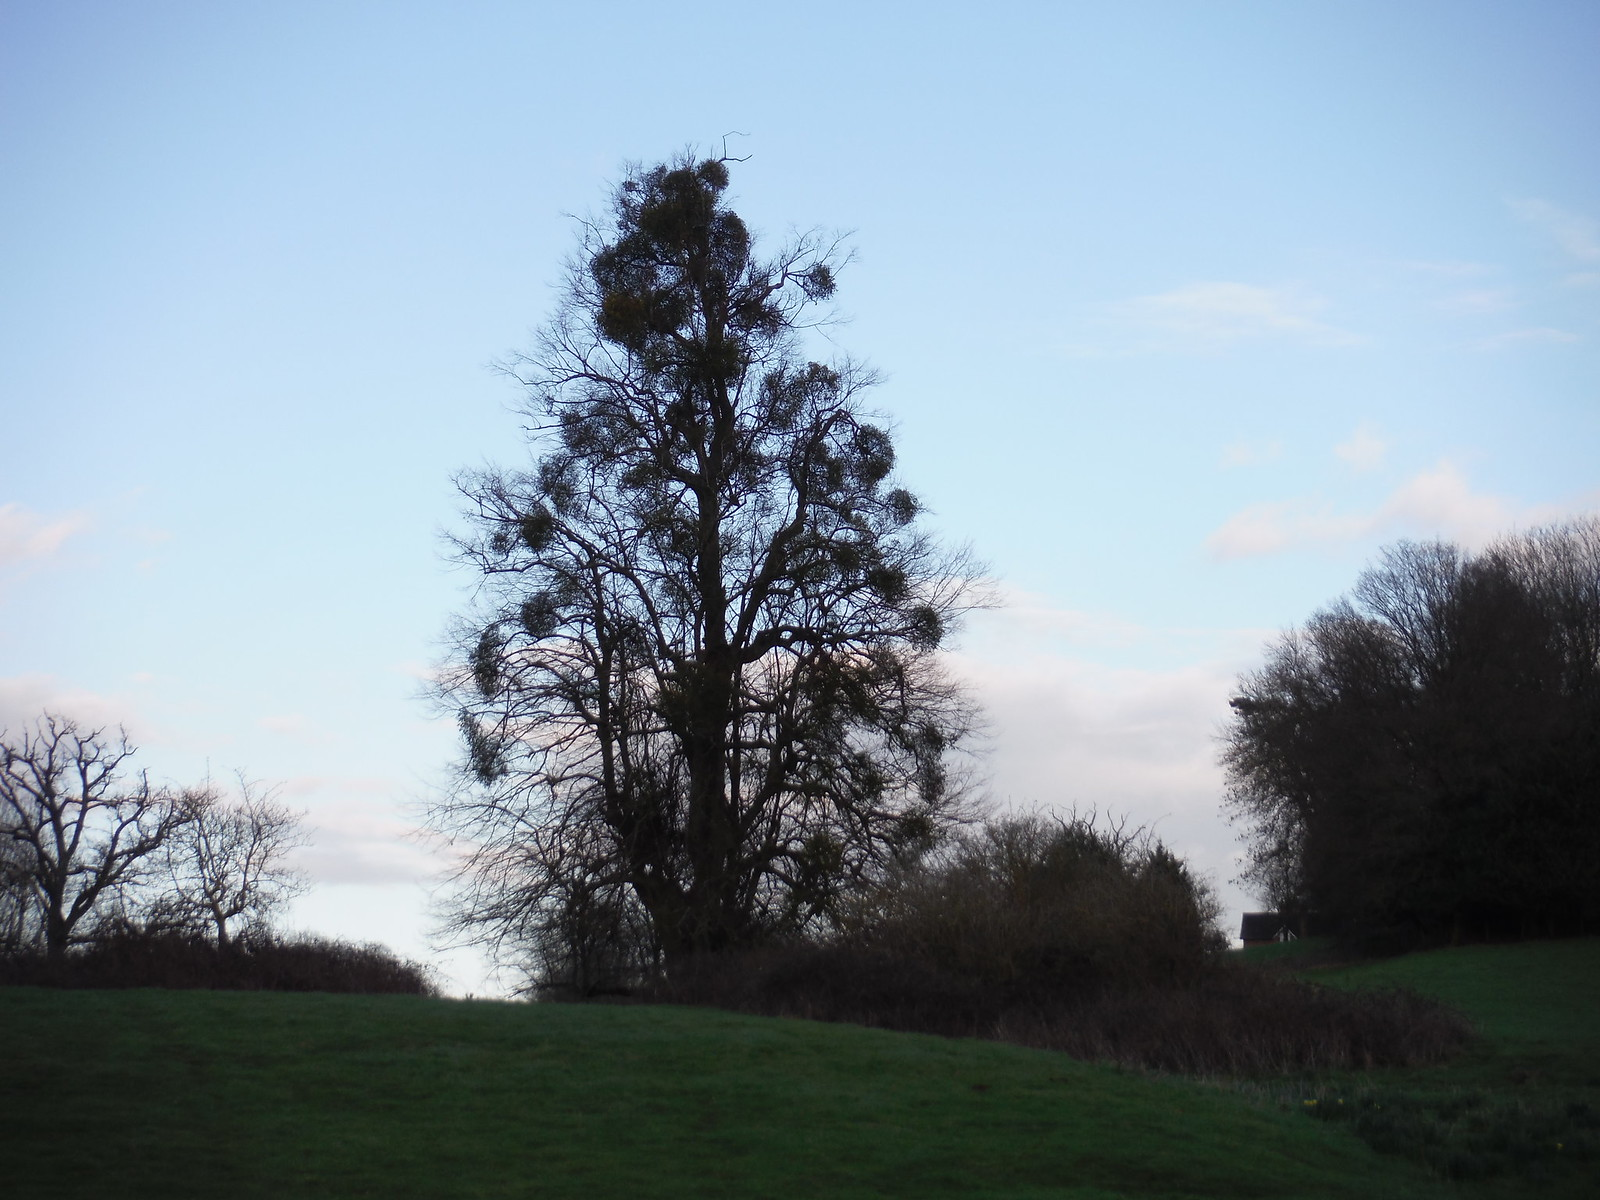 Tree in Midgham Park SWC Walk 117 Aldermaston to Woolhampton (via Stanford Dingley)